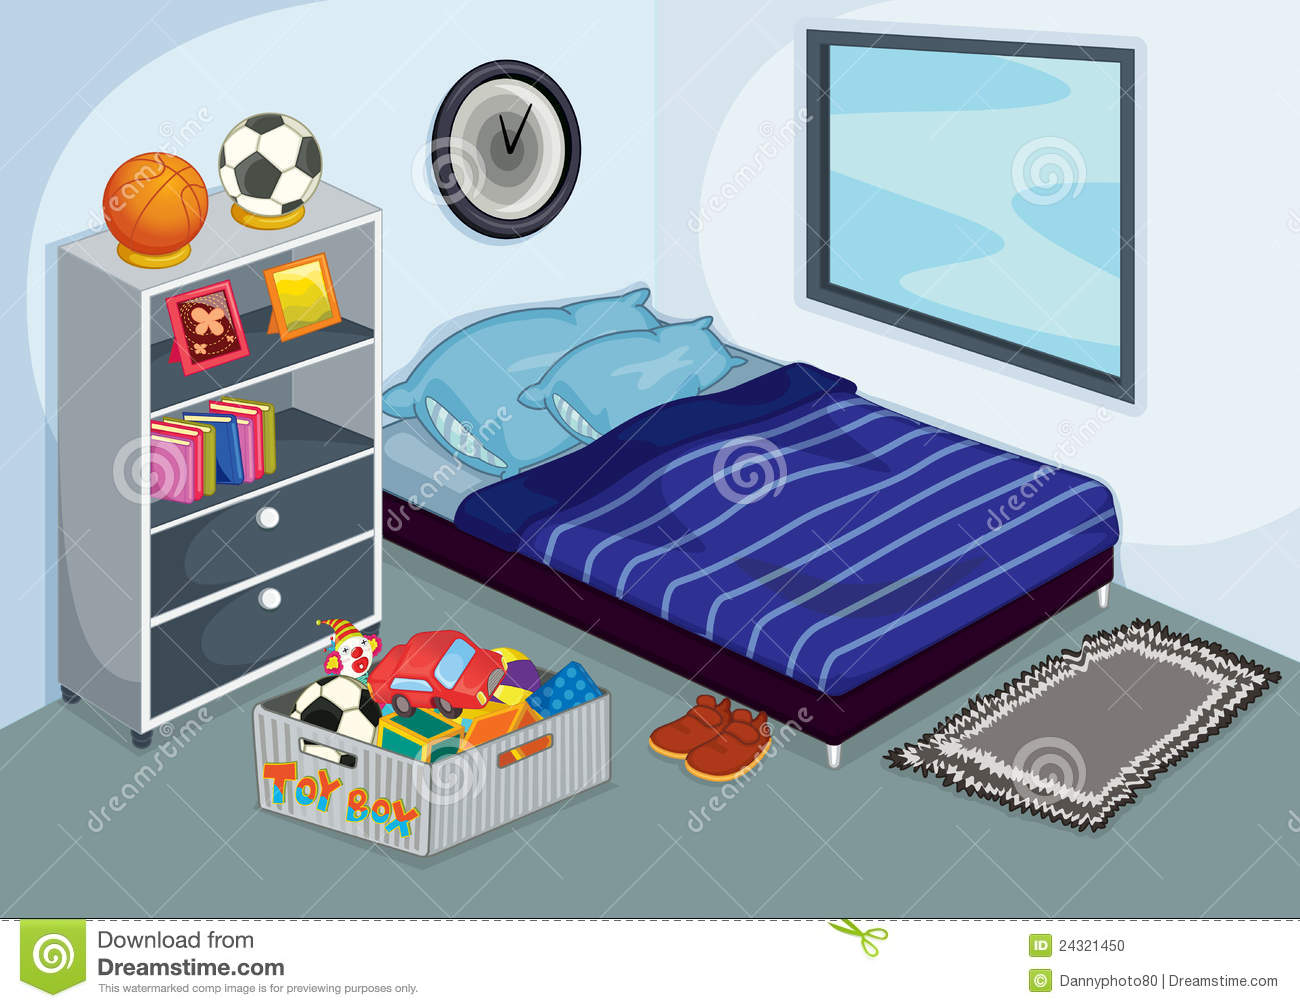 Bed clipart childrens bedroom 12 jpg Full Art Clip